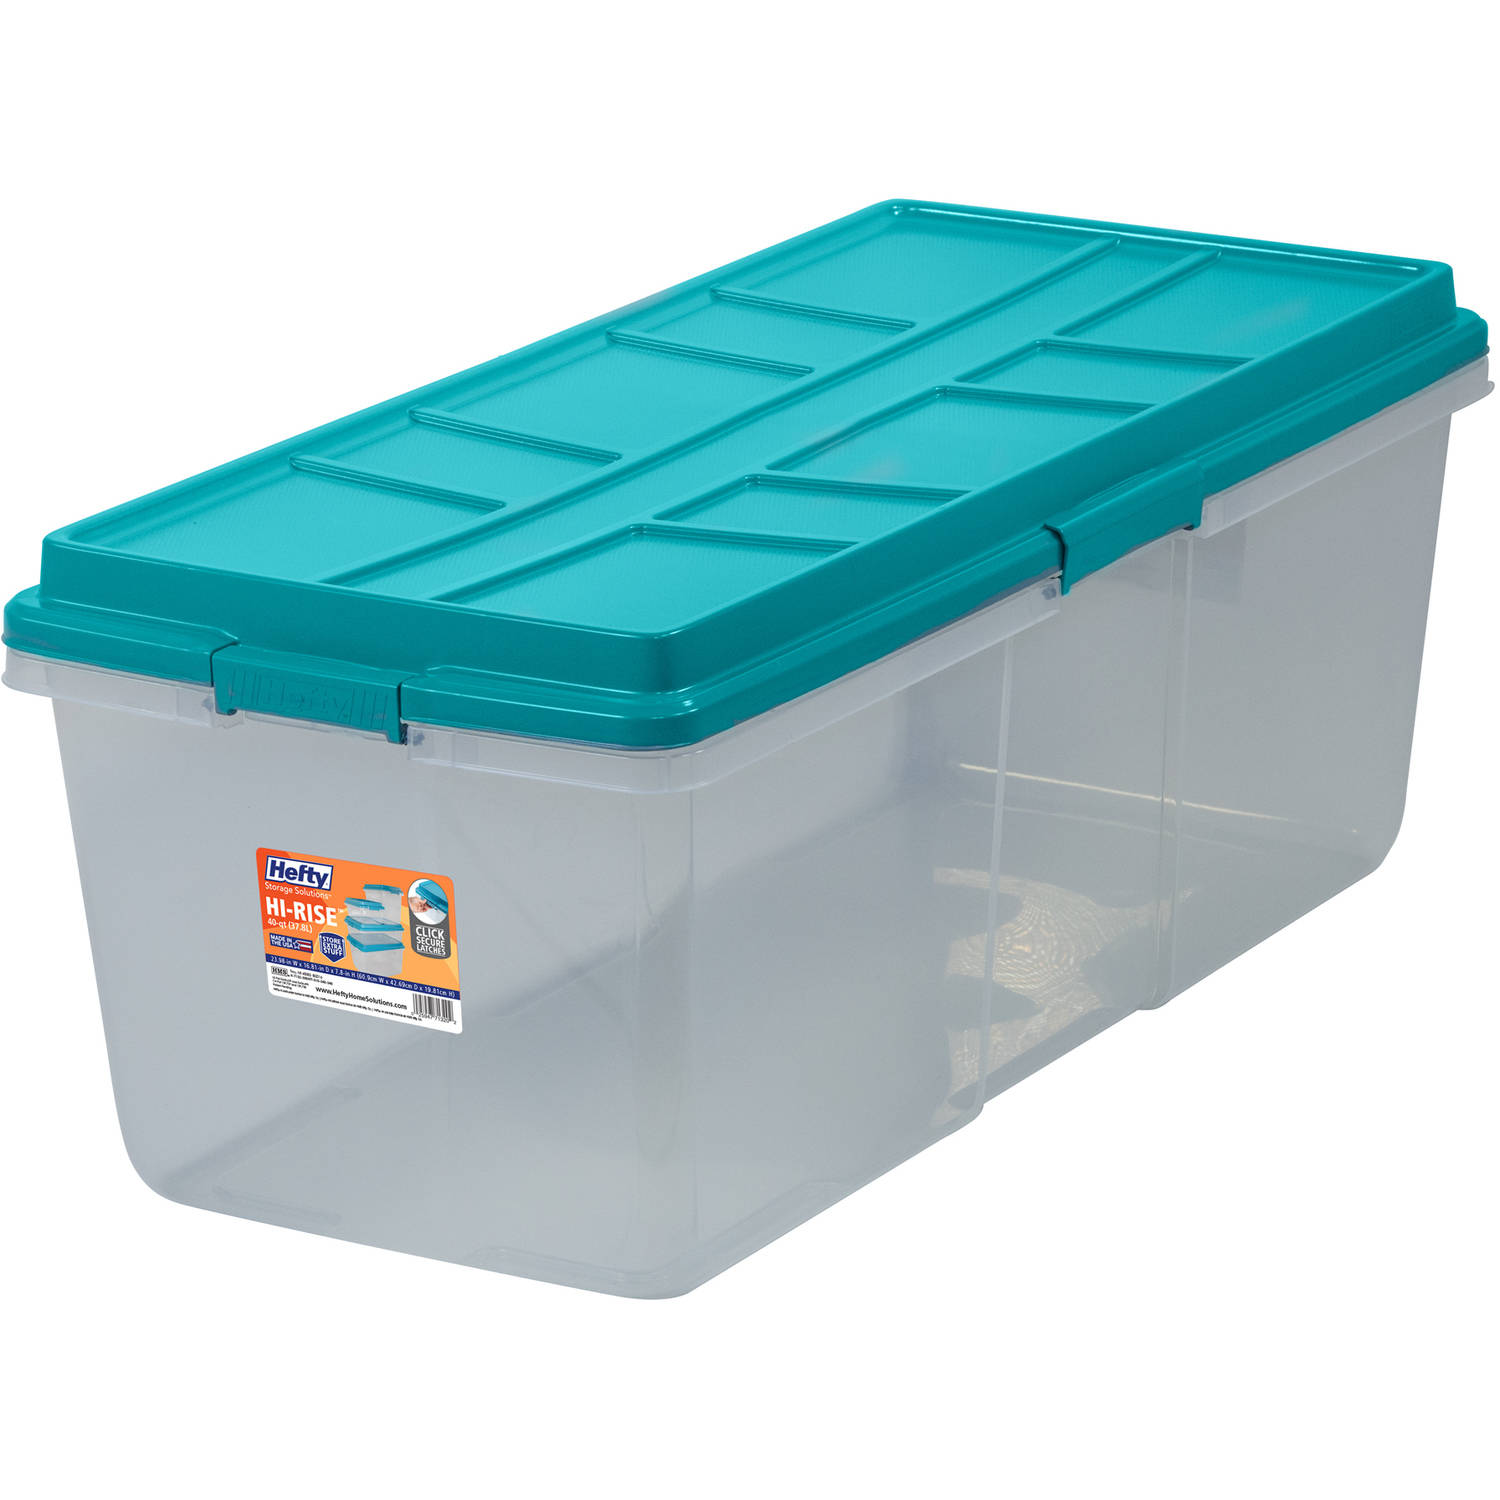 Hefty 113-Qt Hi-Rise Clear Latch Box, Teal Sachet Lid and Handles